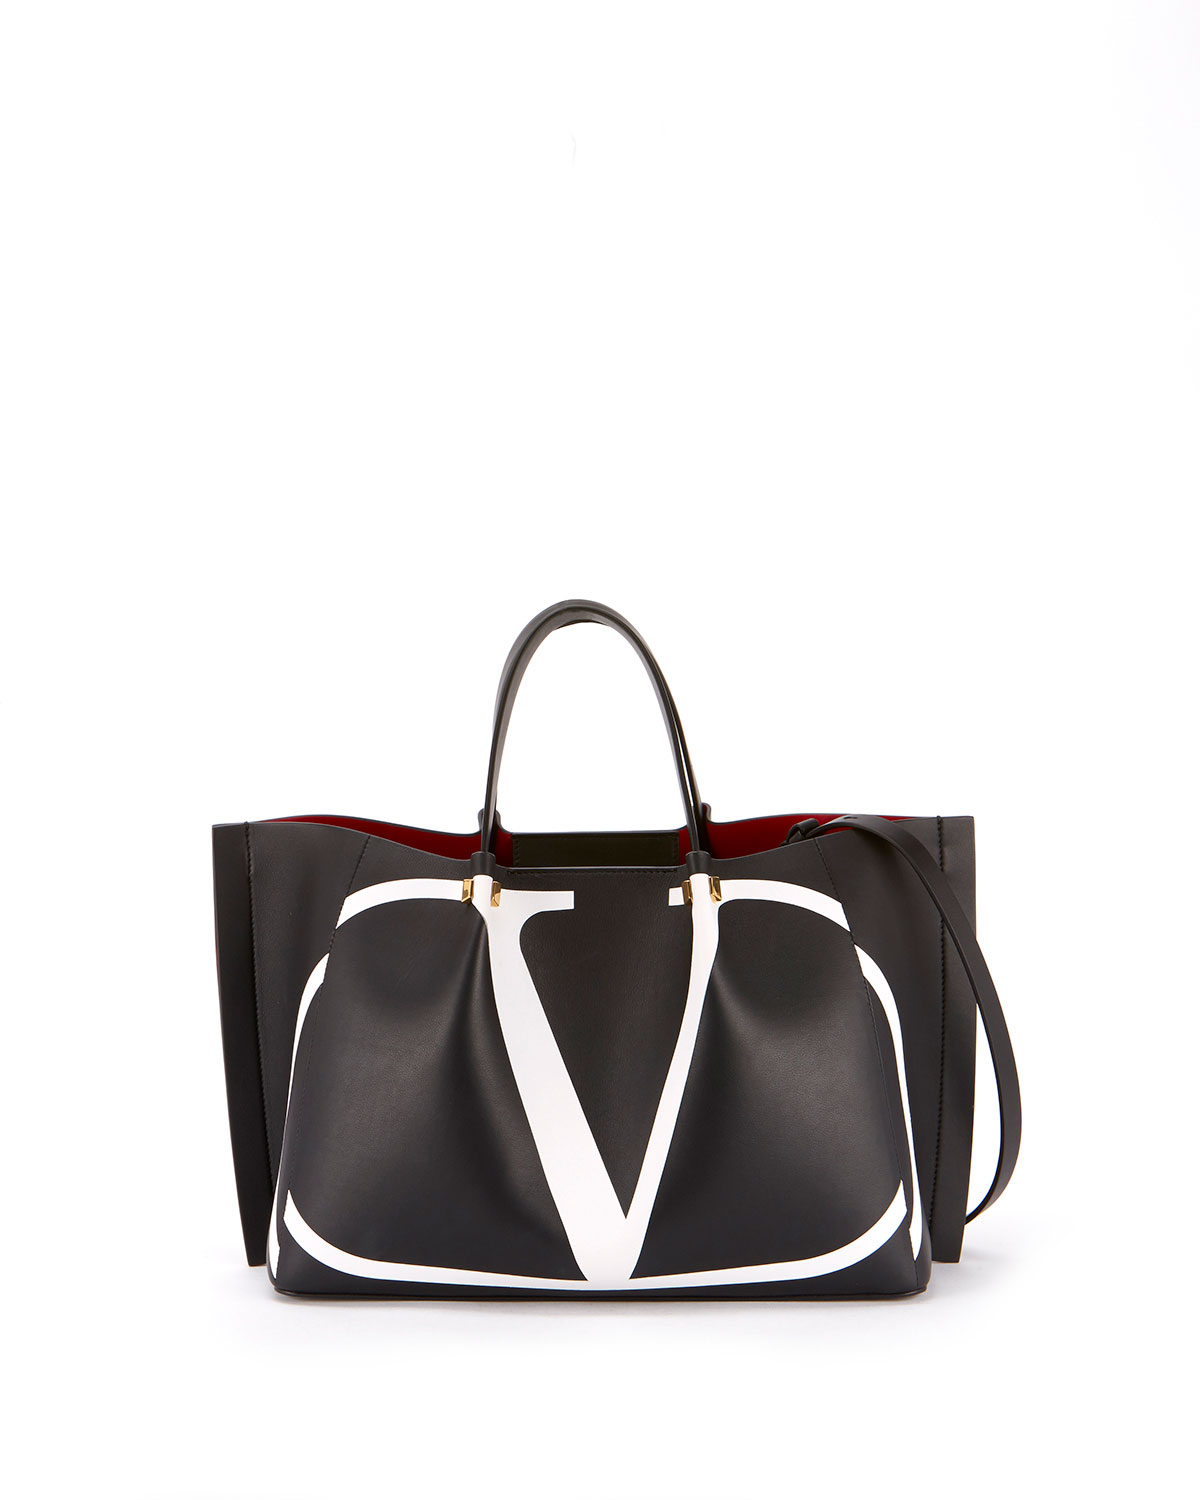 774534dec8c VLOGO Escape Medium Leather Tote Bag